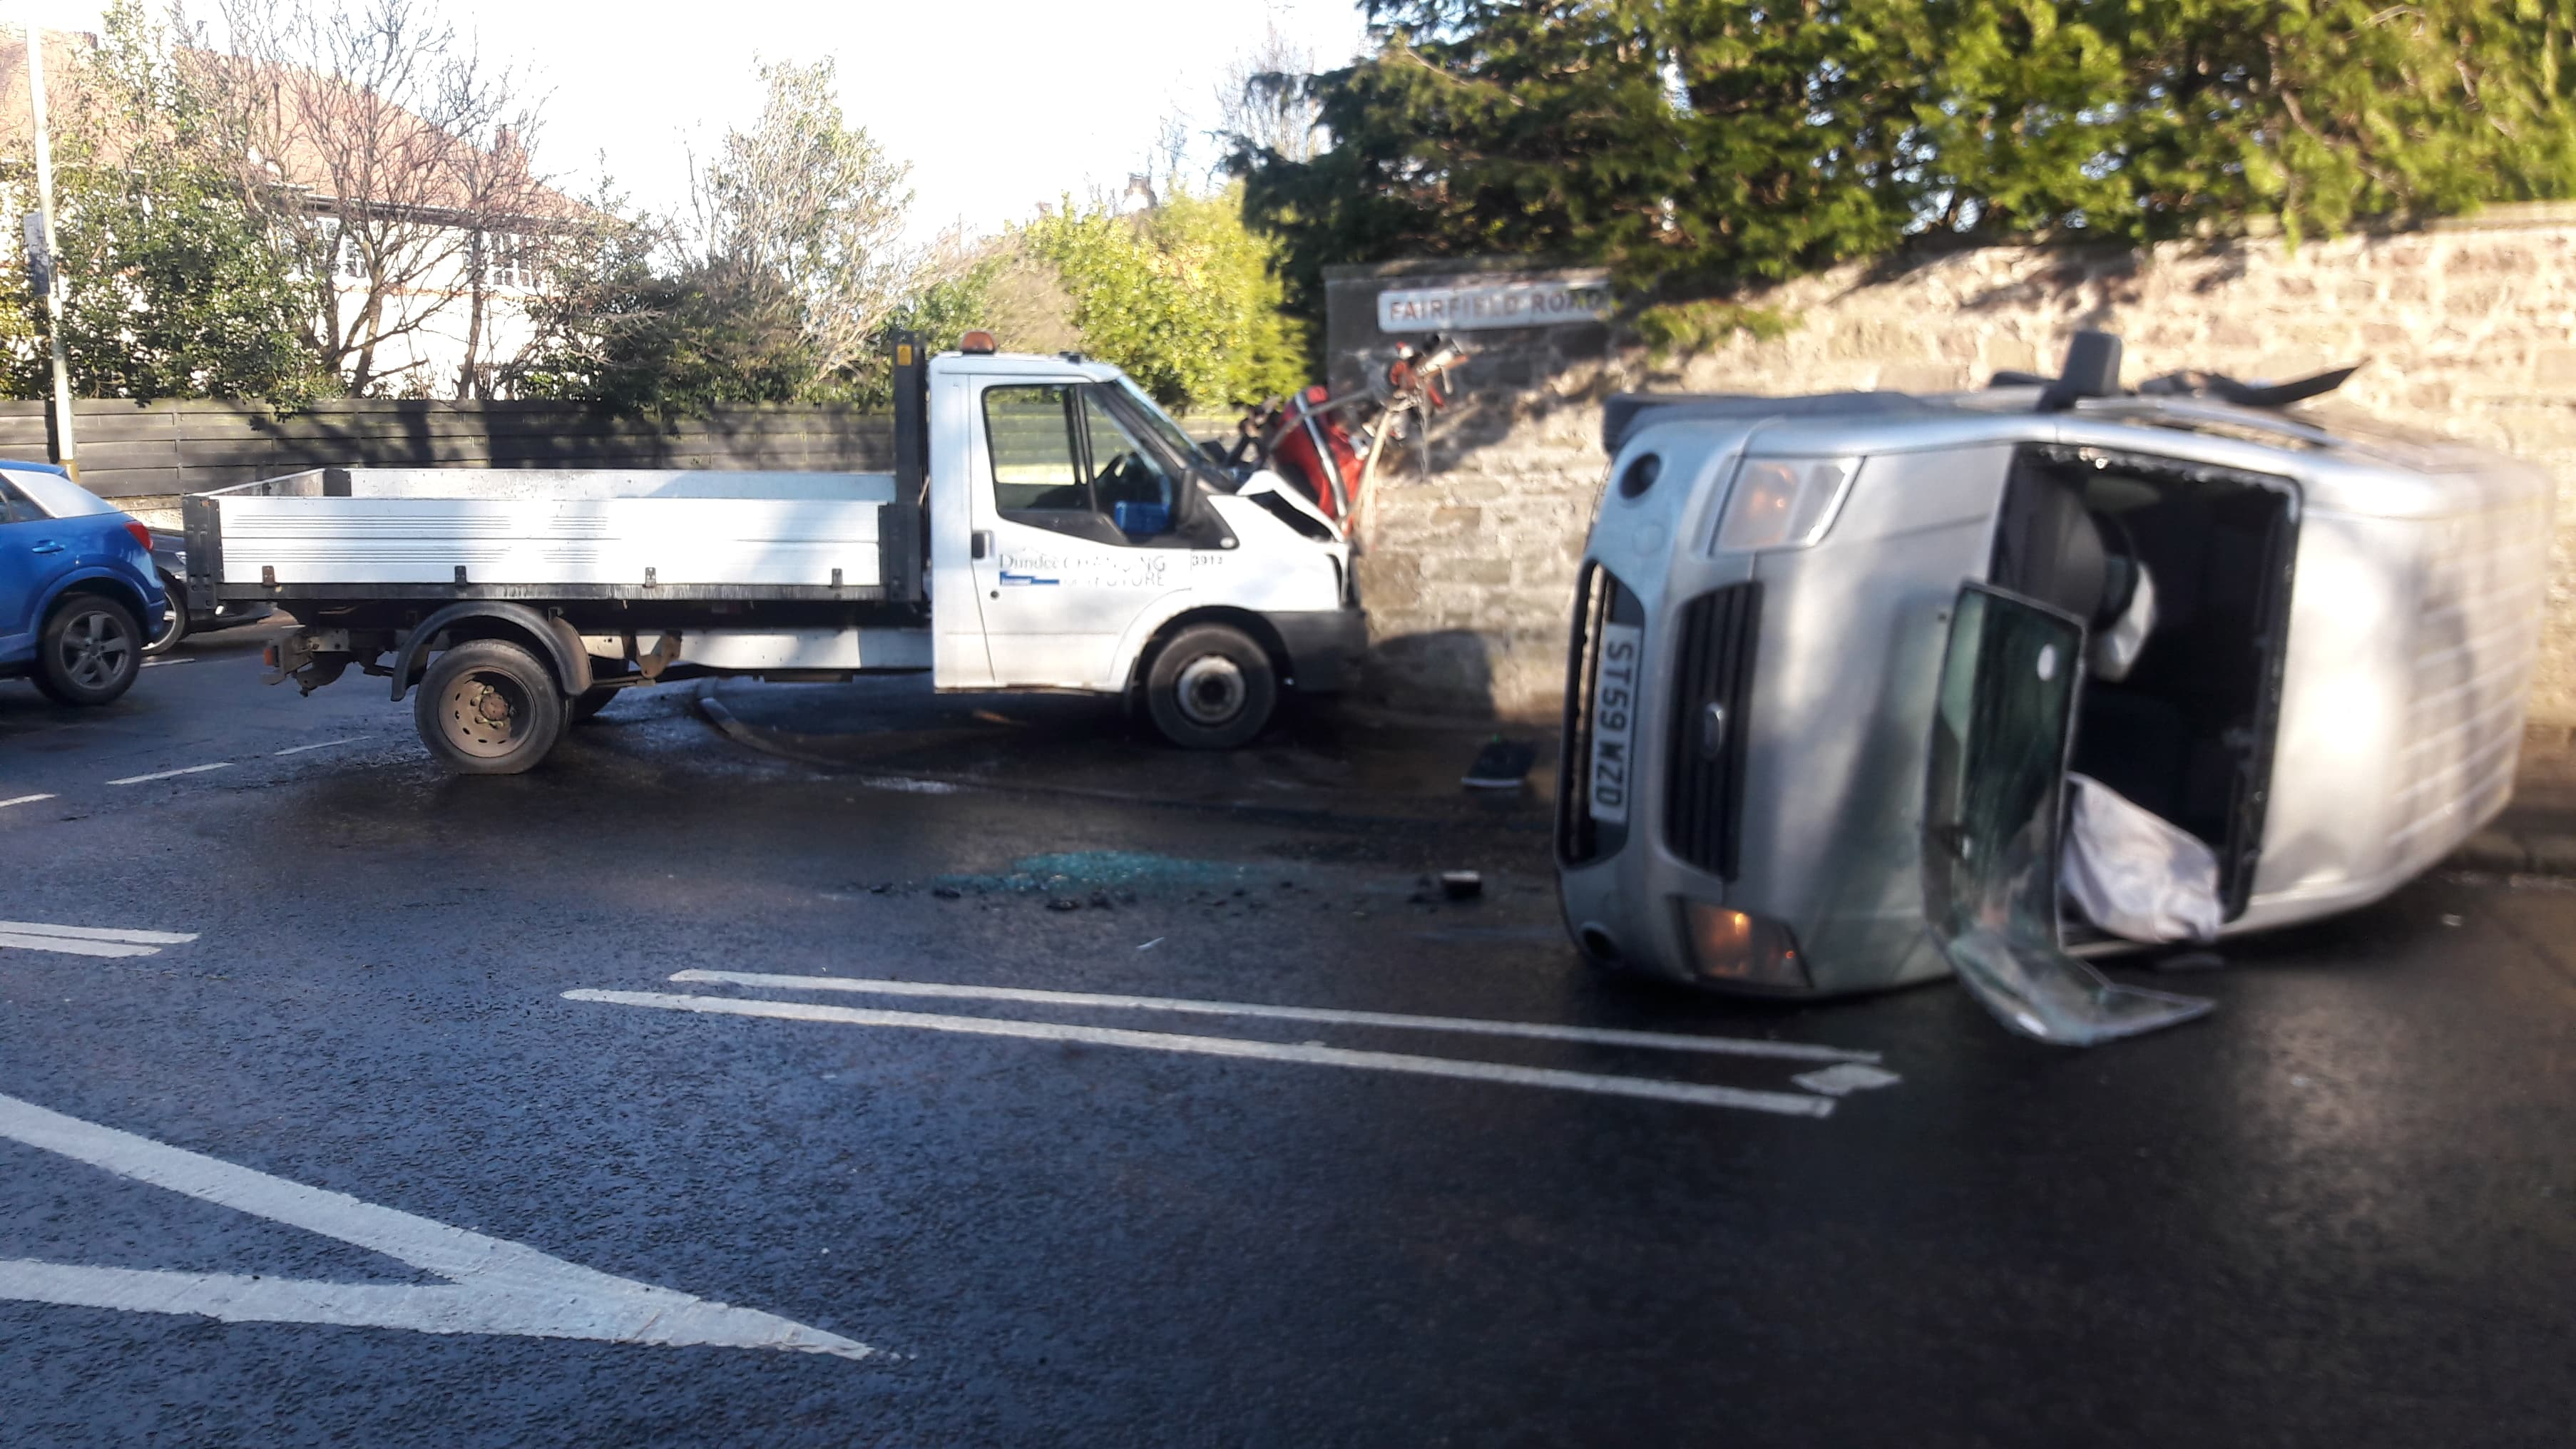 The crash took place on the junction of Strathern Road and Fairfield Road